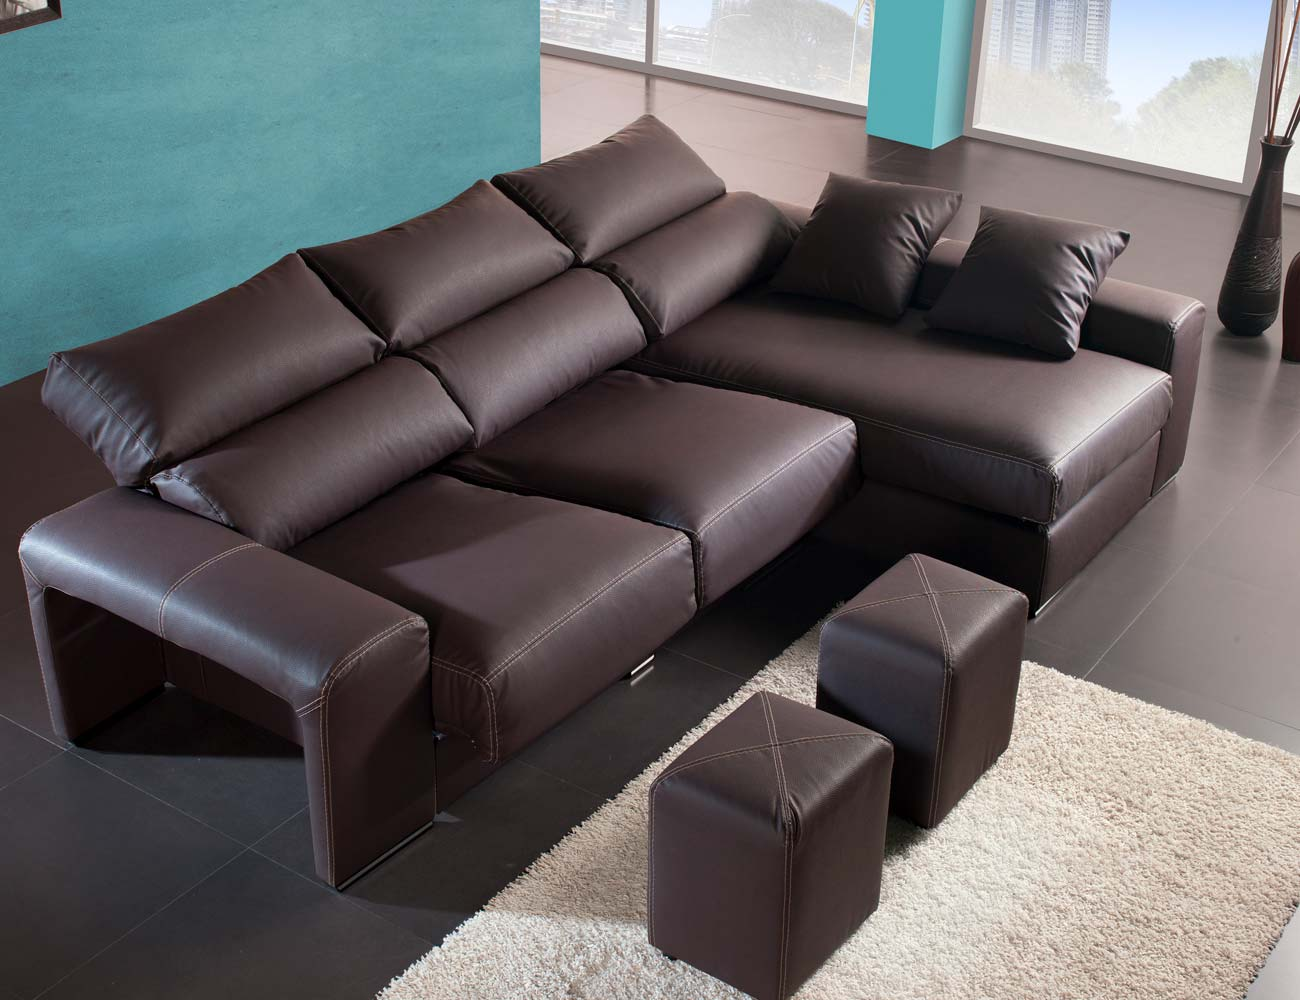 Sofa chaiselongue moderno polipiel chocolate poufs taburetes6